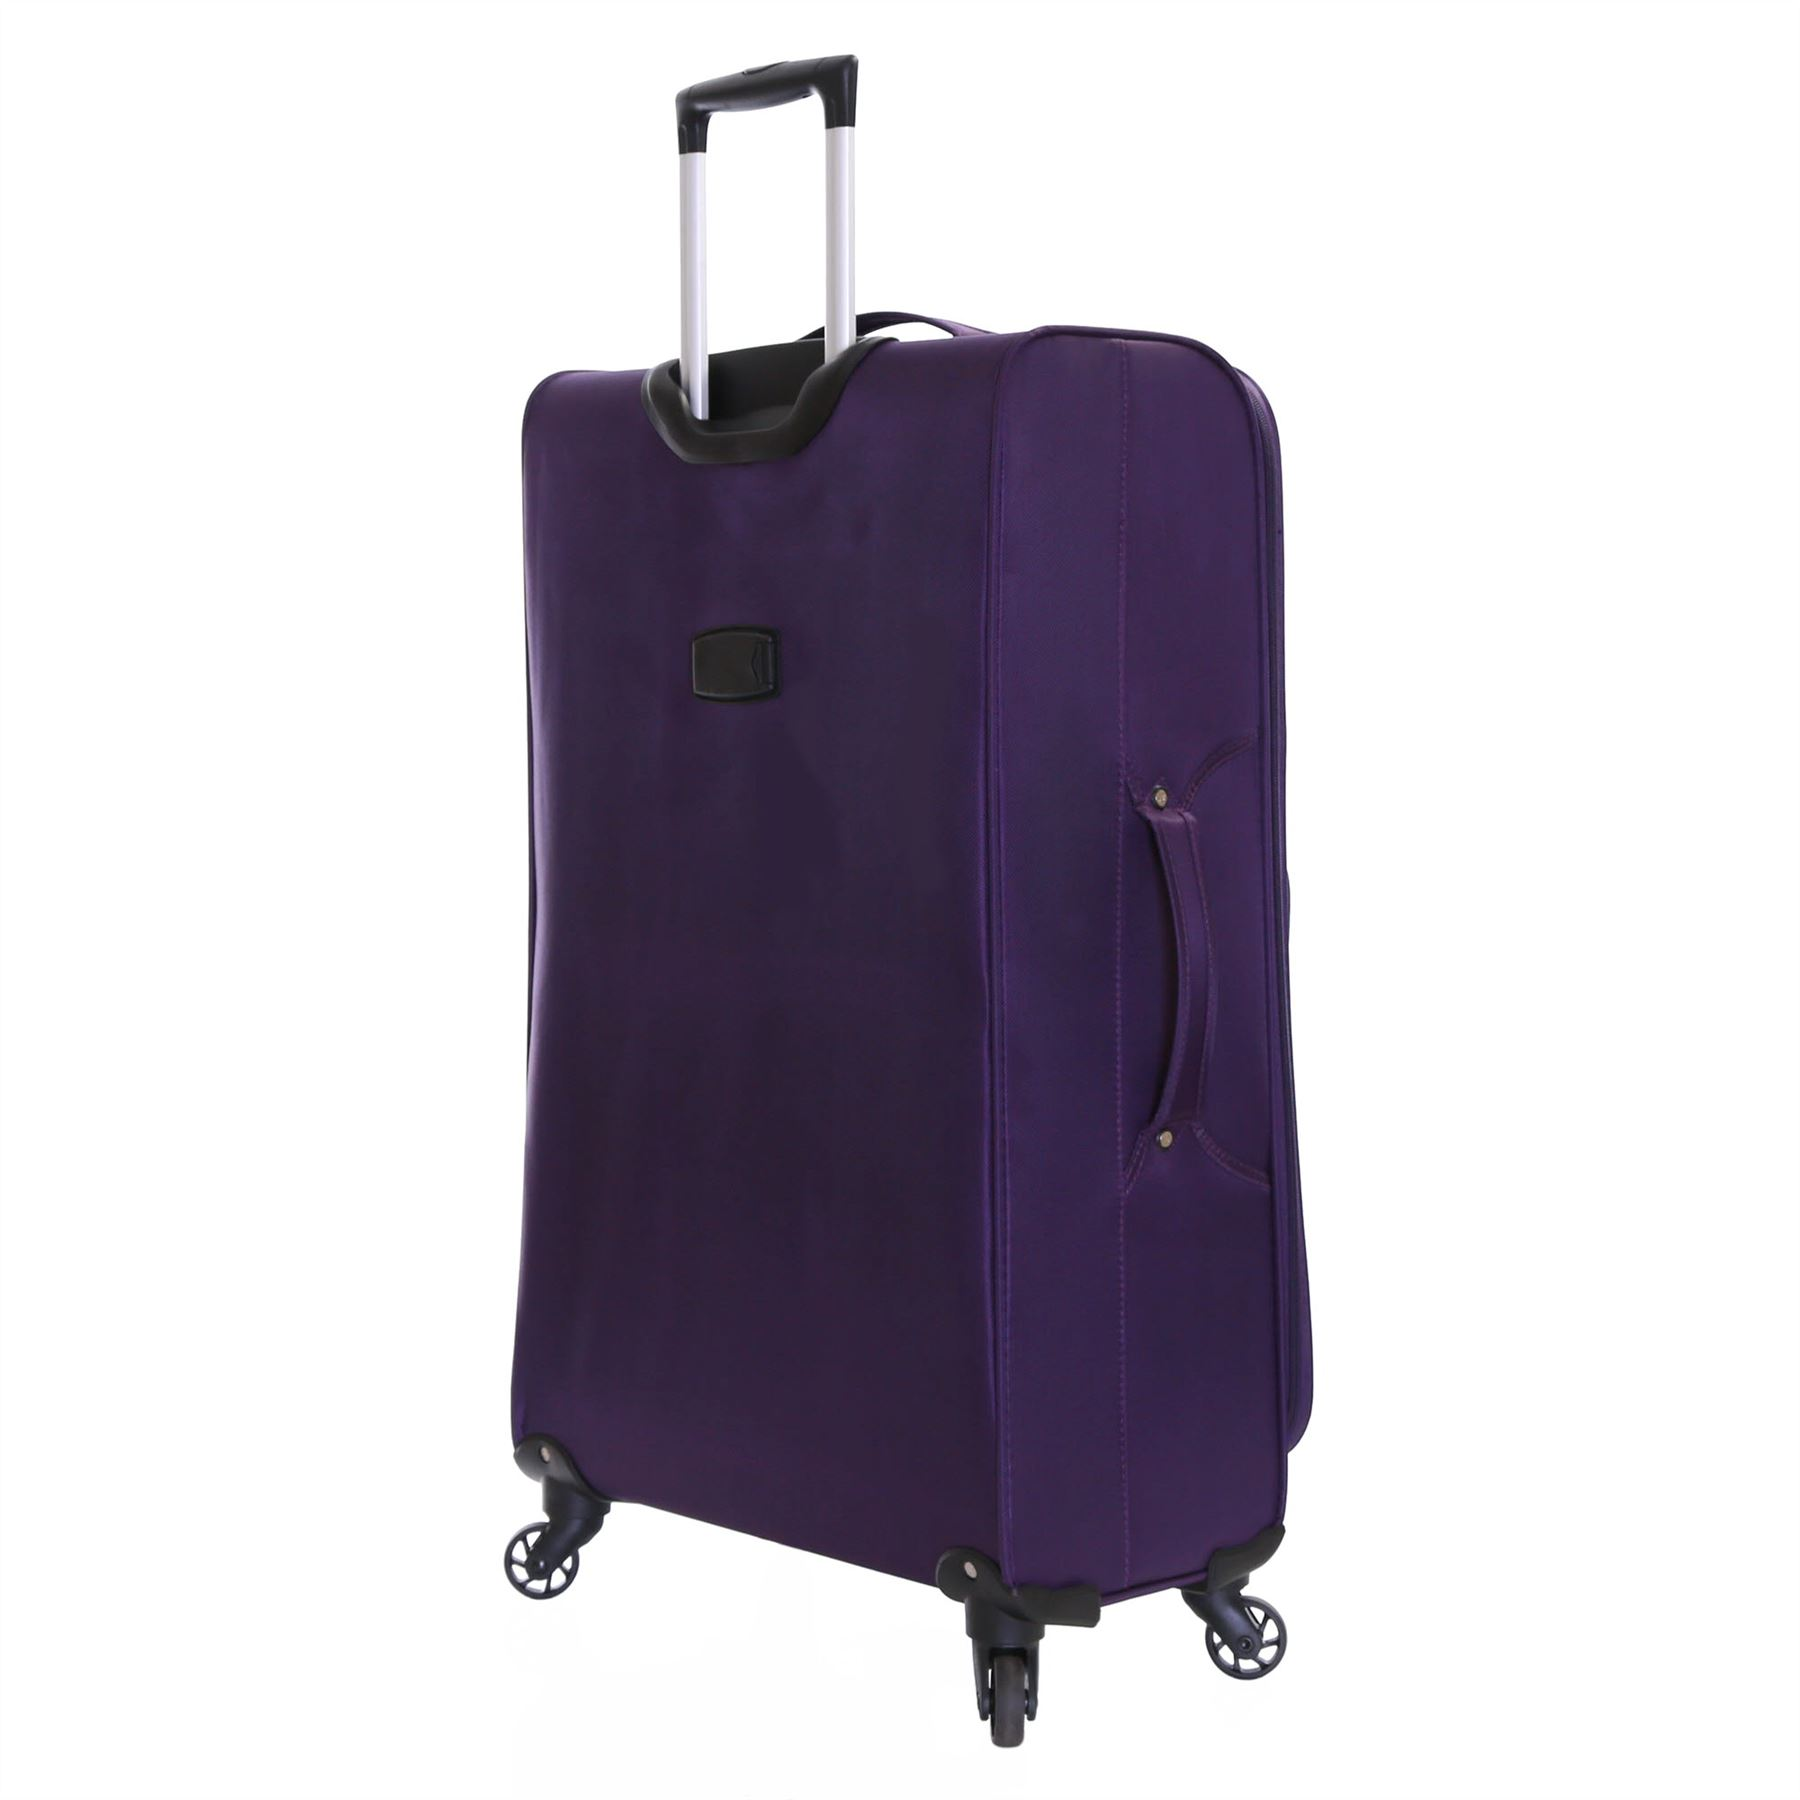 Bags Trolley Luggage By Tatonka Lightweight 4 Wheeled Extra Large Cabin Trolley Luggage